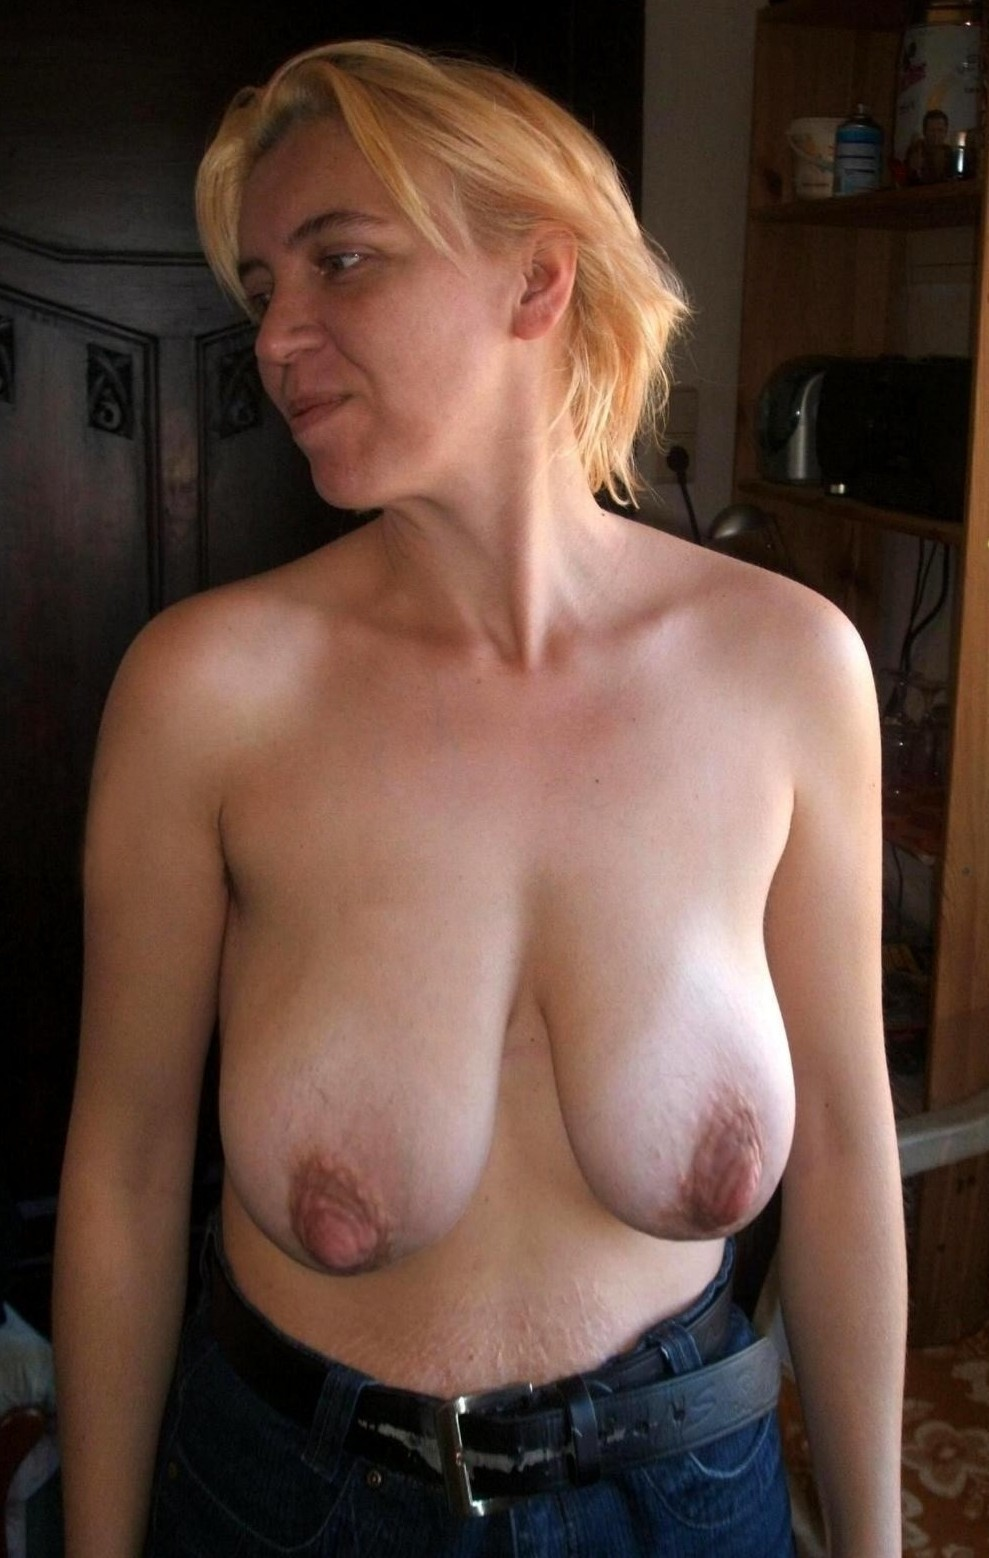 image She has some pointy pierced nipples